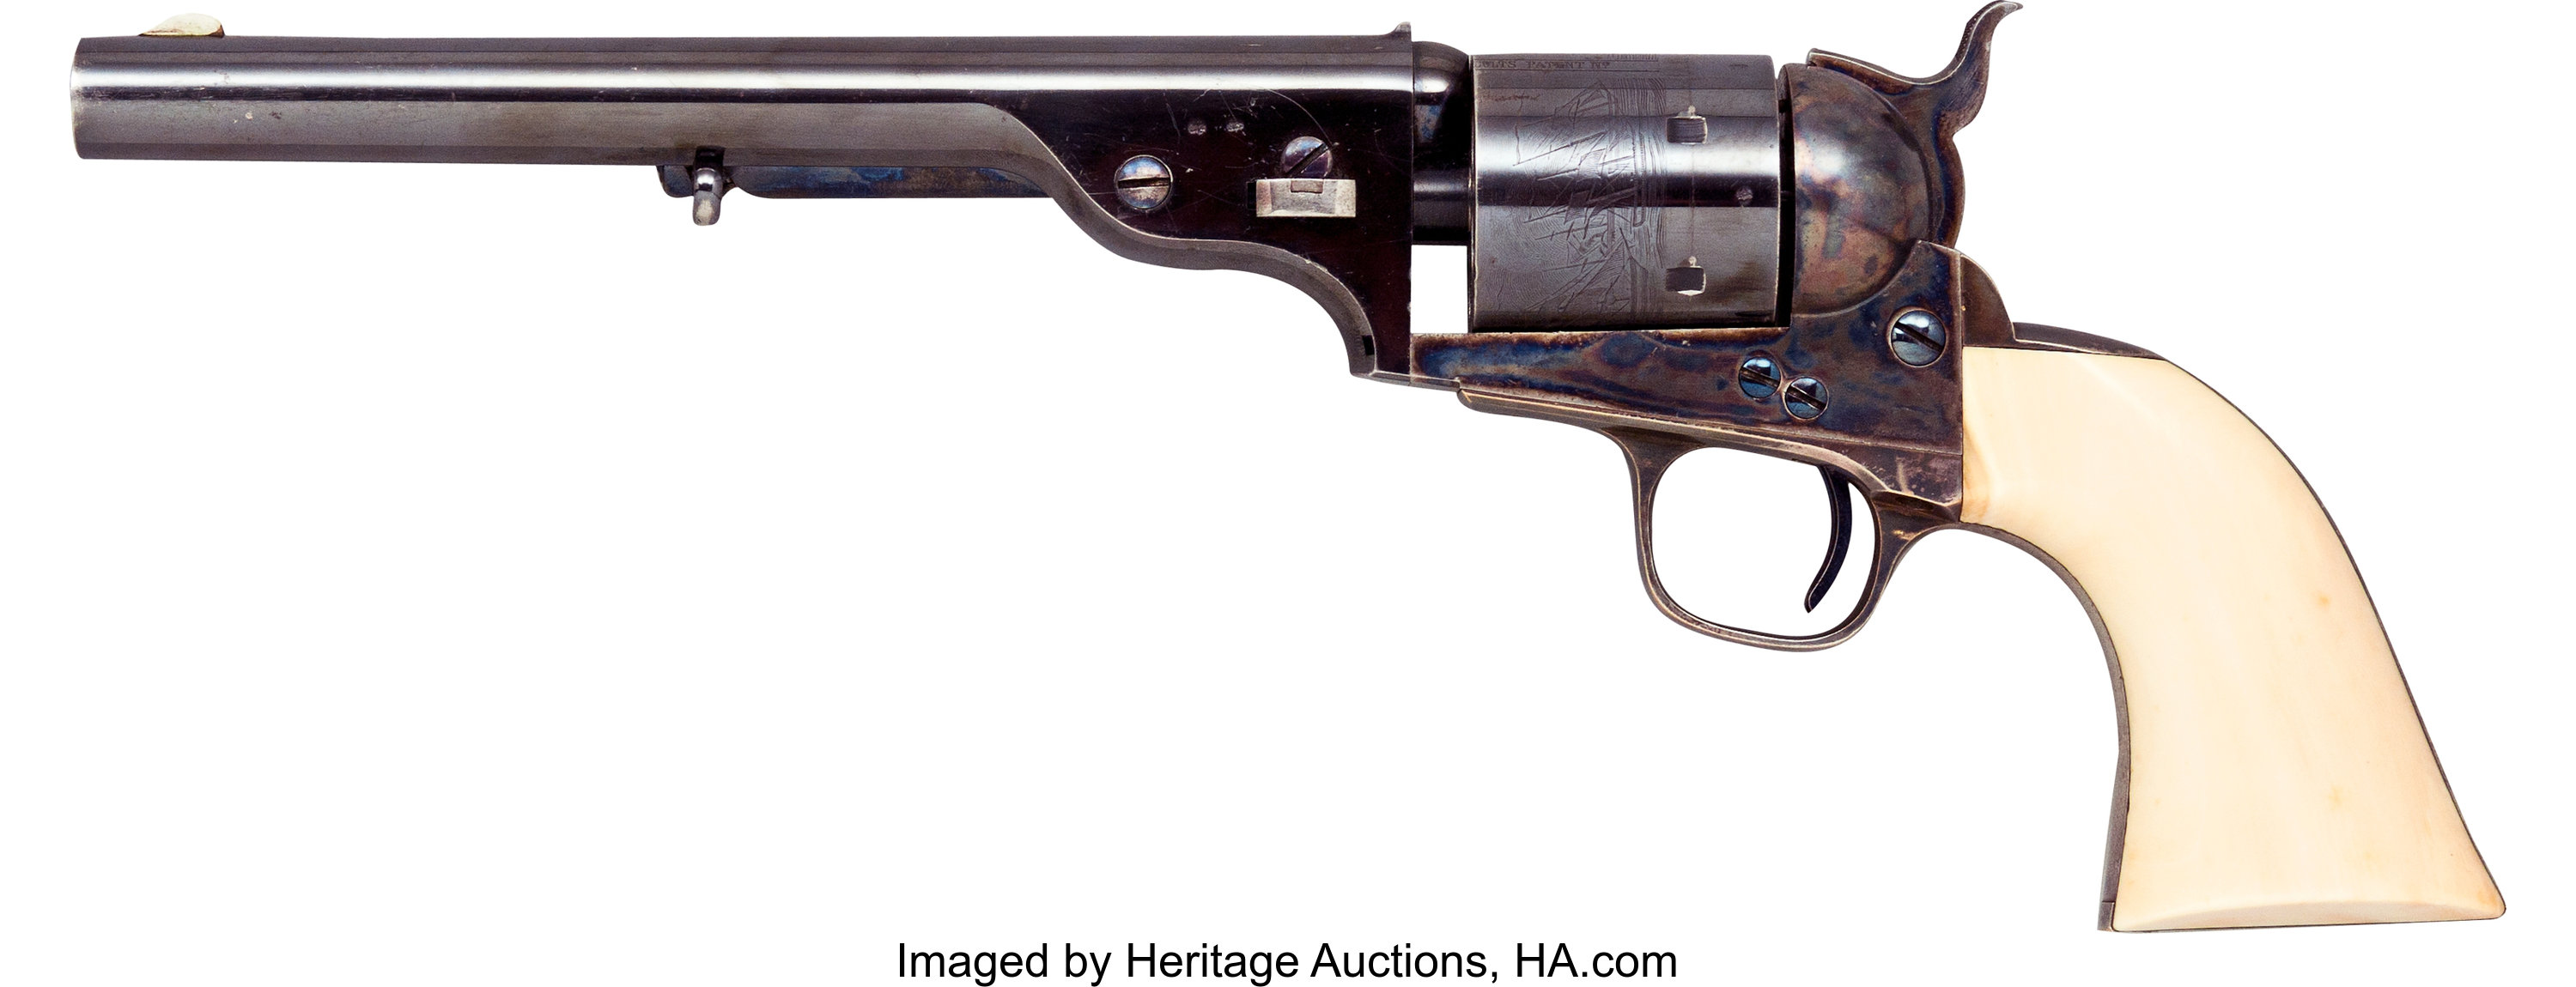 Rare Colt Model 1871 72 Open Top Prototype Single Action Lot 33091 Heritage Auctions